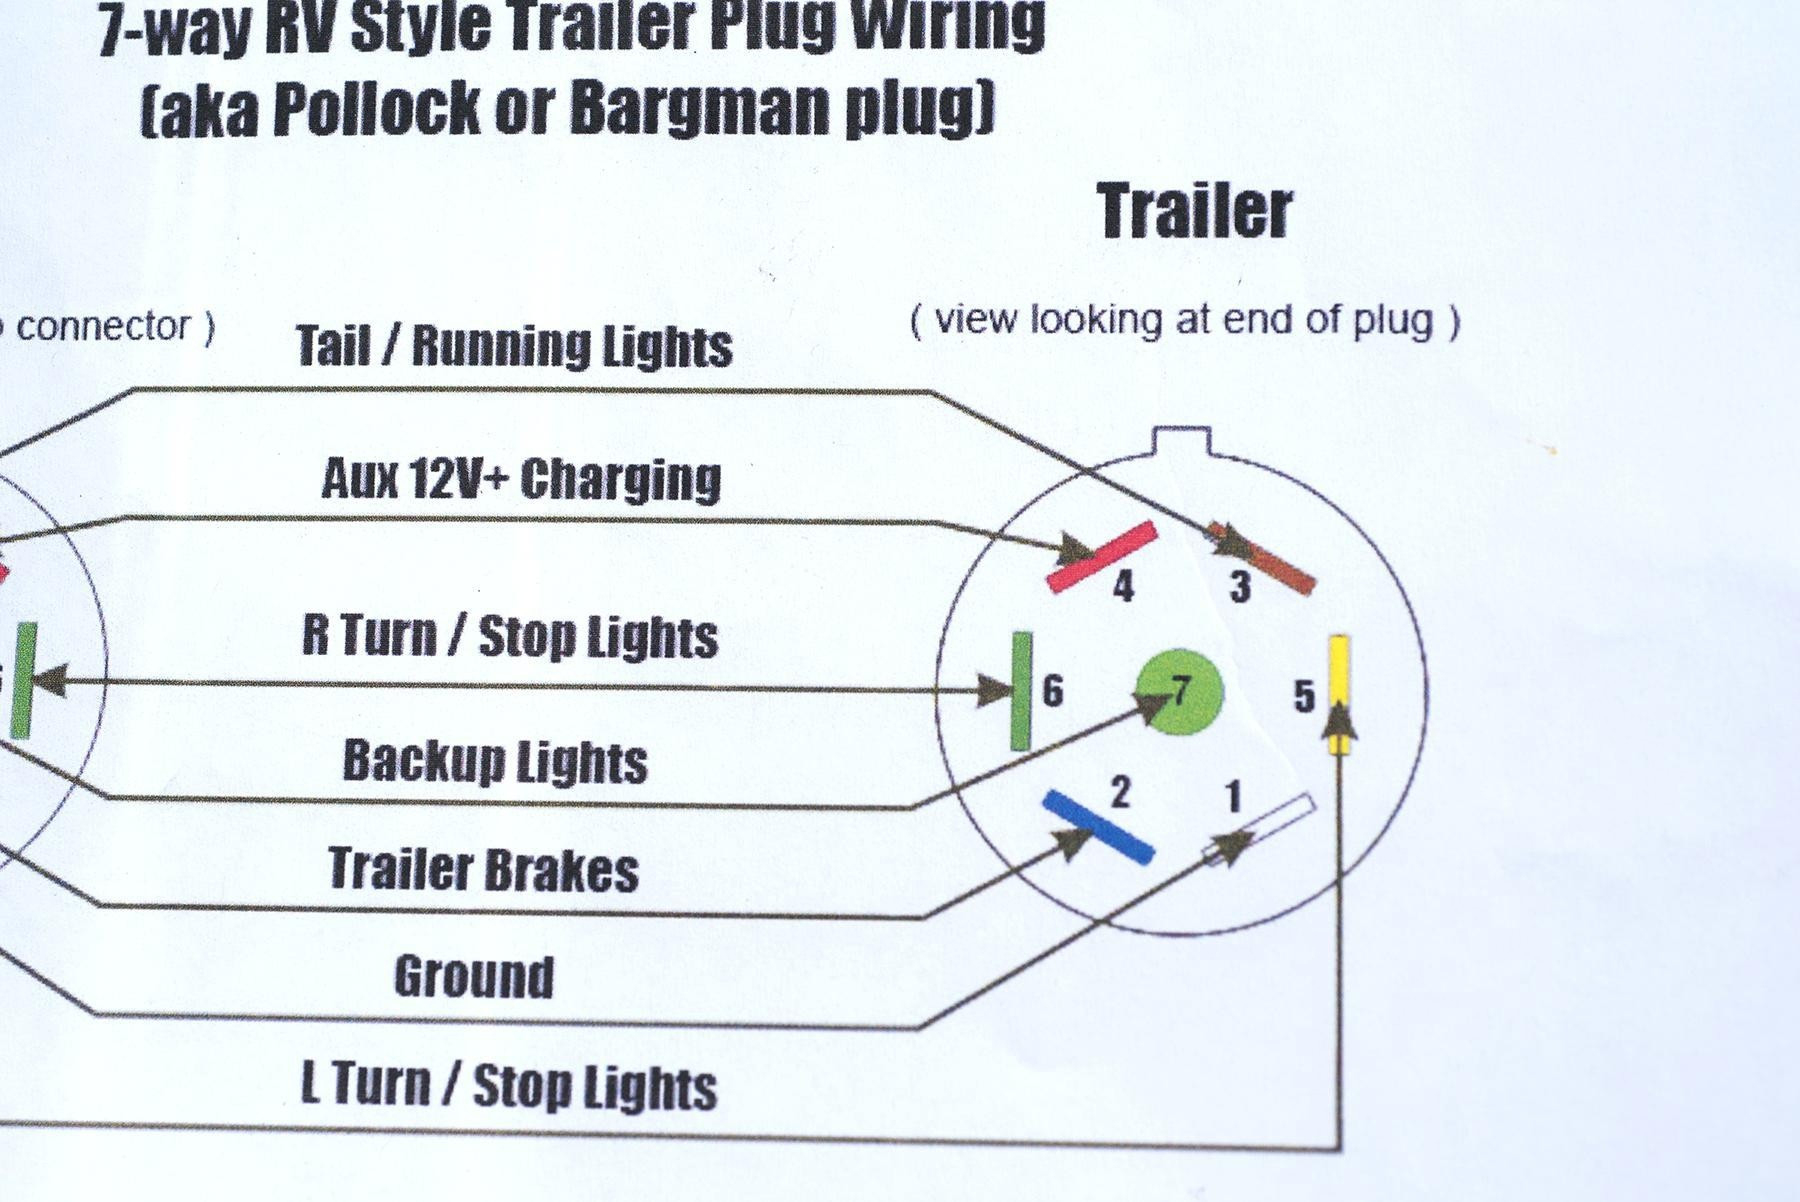 Wire Diagram For Trailer Plug - Wiring Diagrams Click - Military Trailer Plug Wiring Diagram